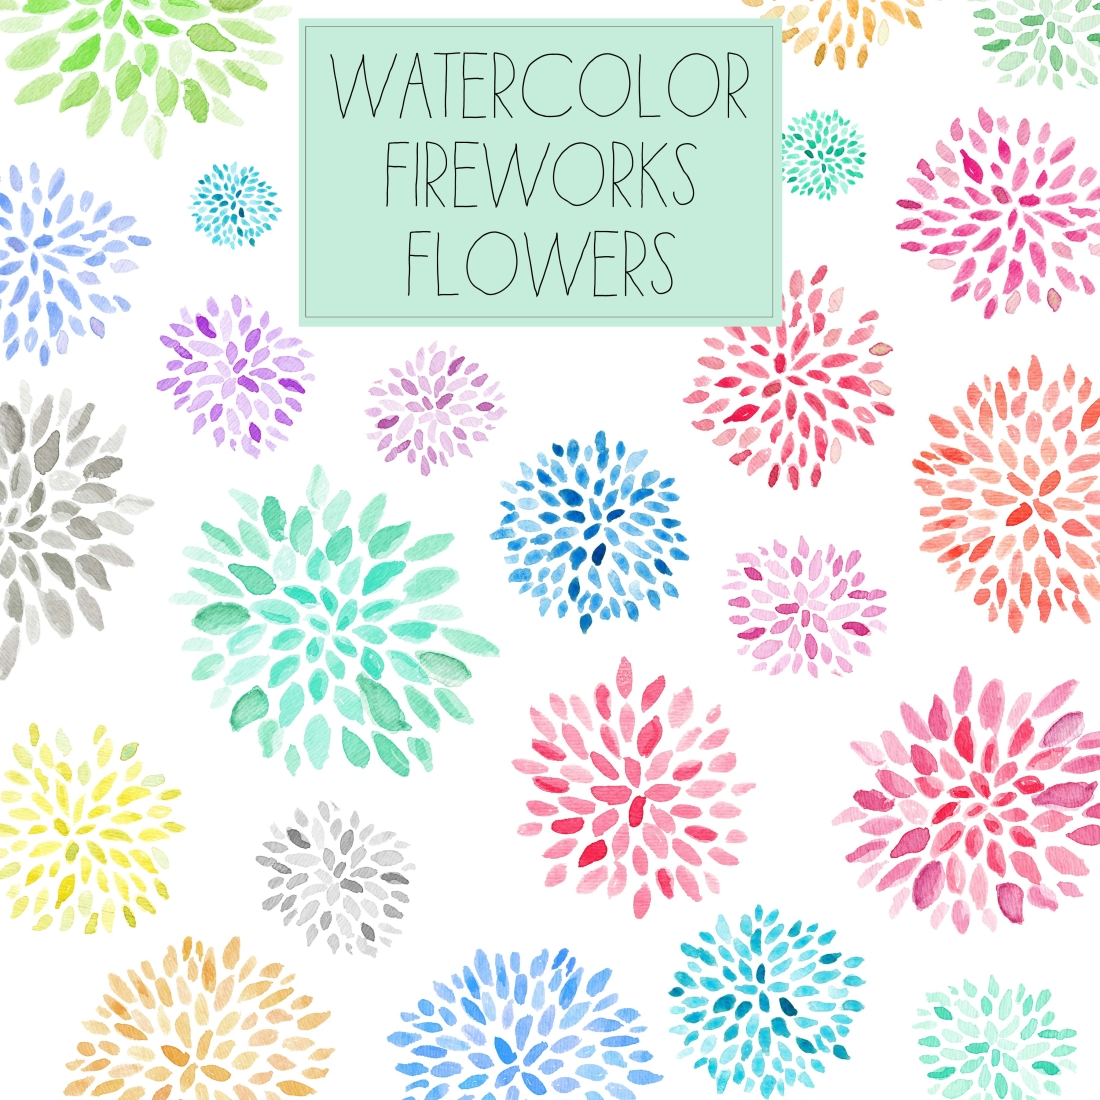 Free Download Watercolor Flower Clip Art Fireworks Flowers